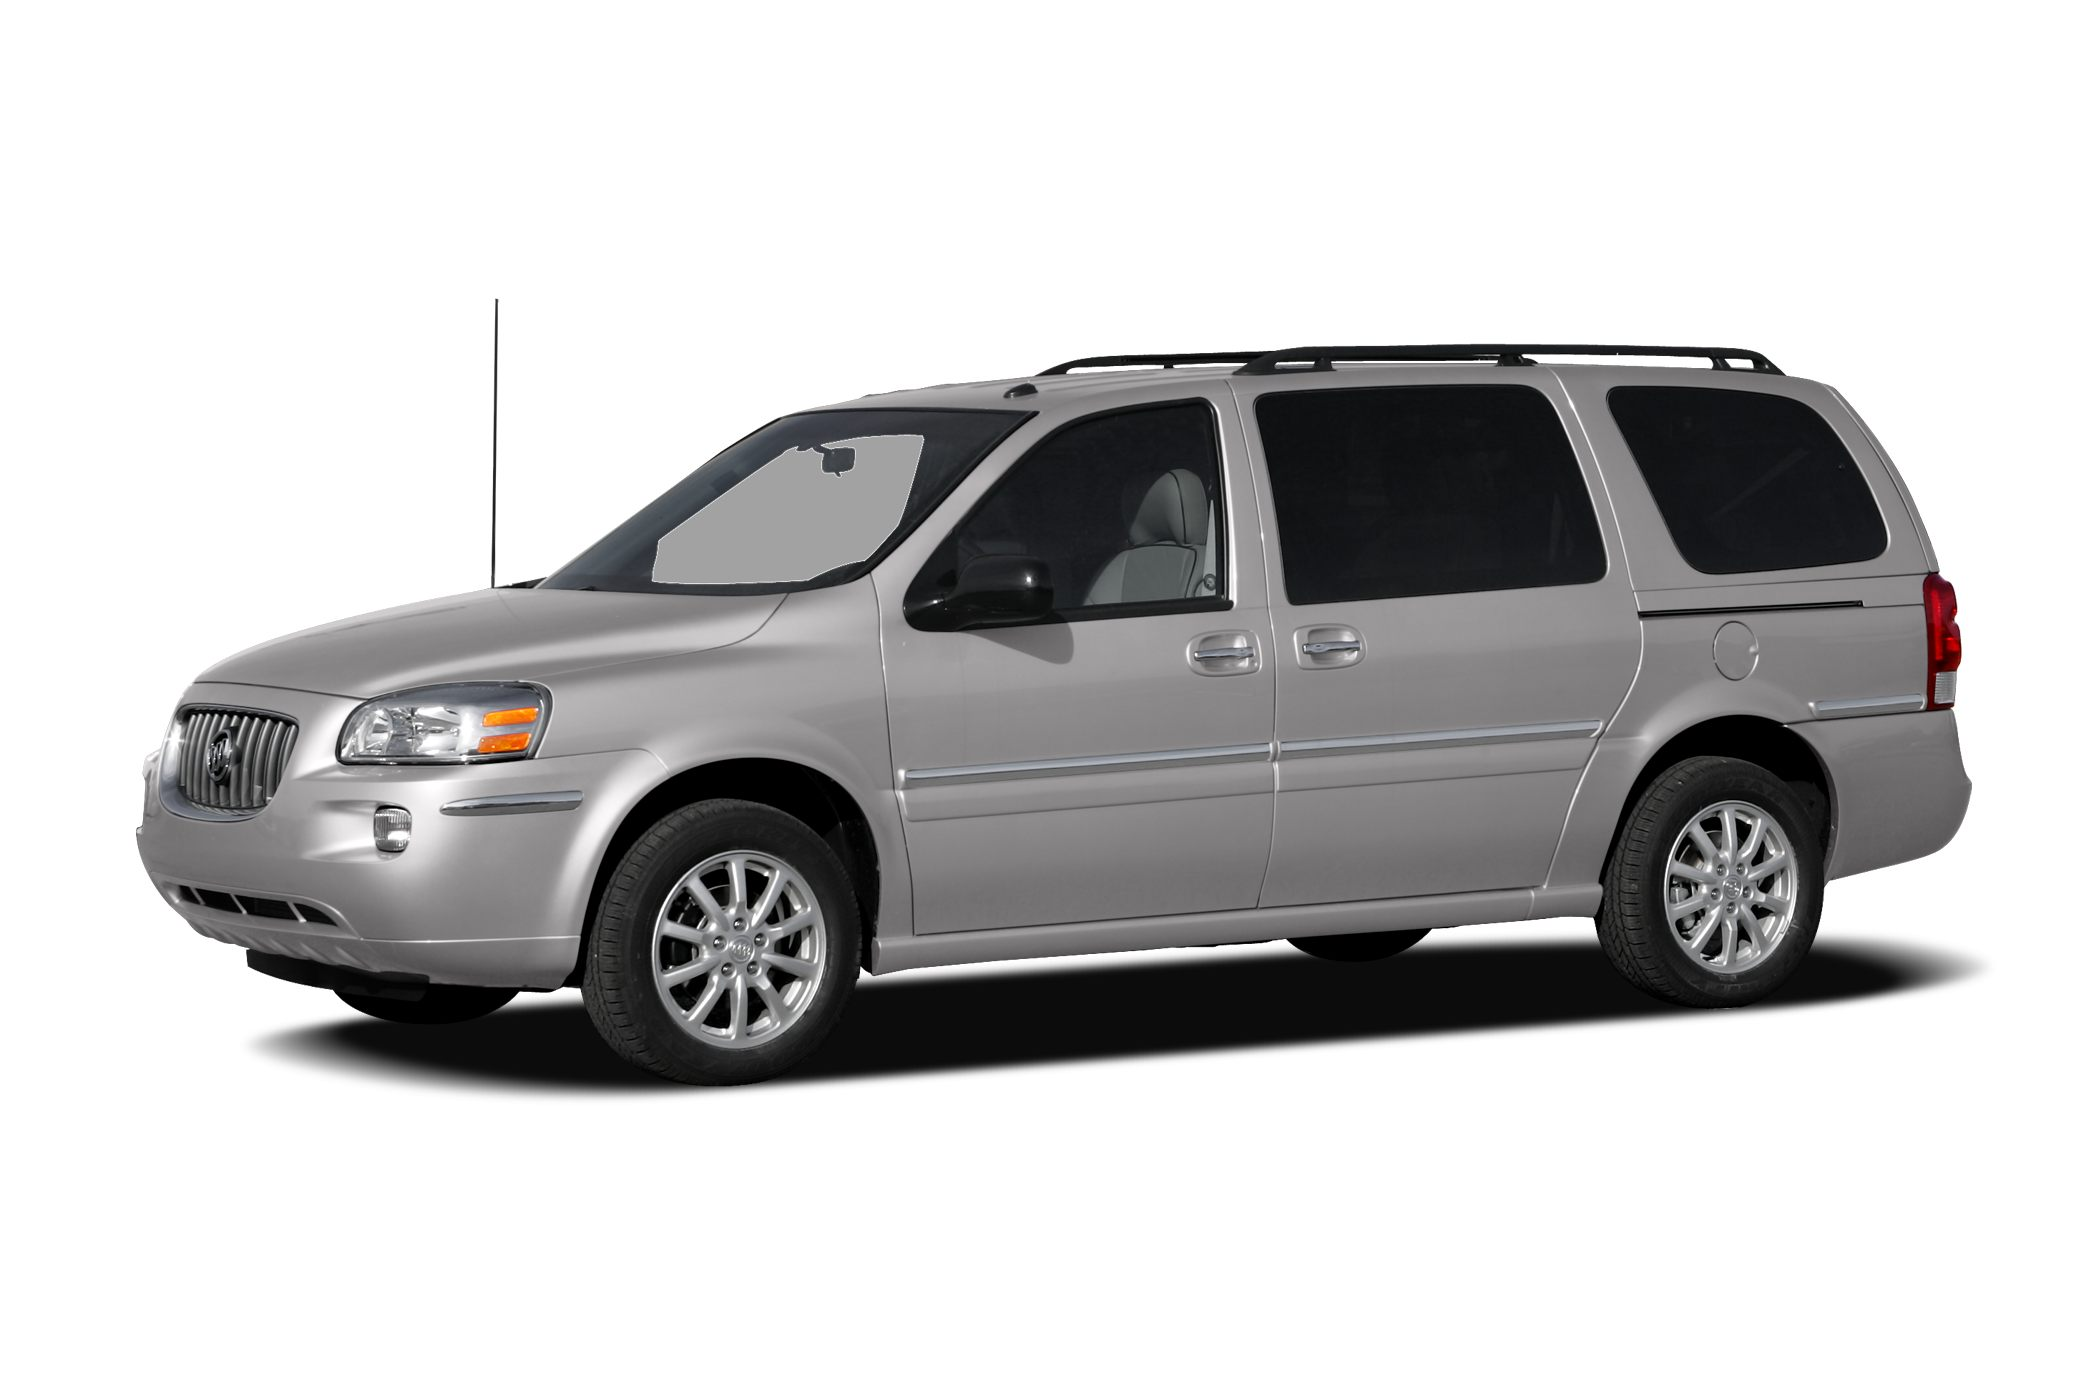 2007 Buick Terraza CX Plus Minivan for sale in Savannah for $8,995 with 74,820 miles.